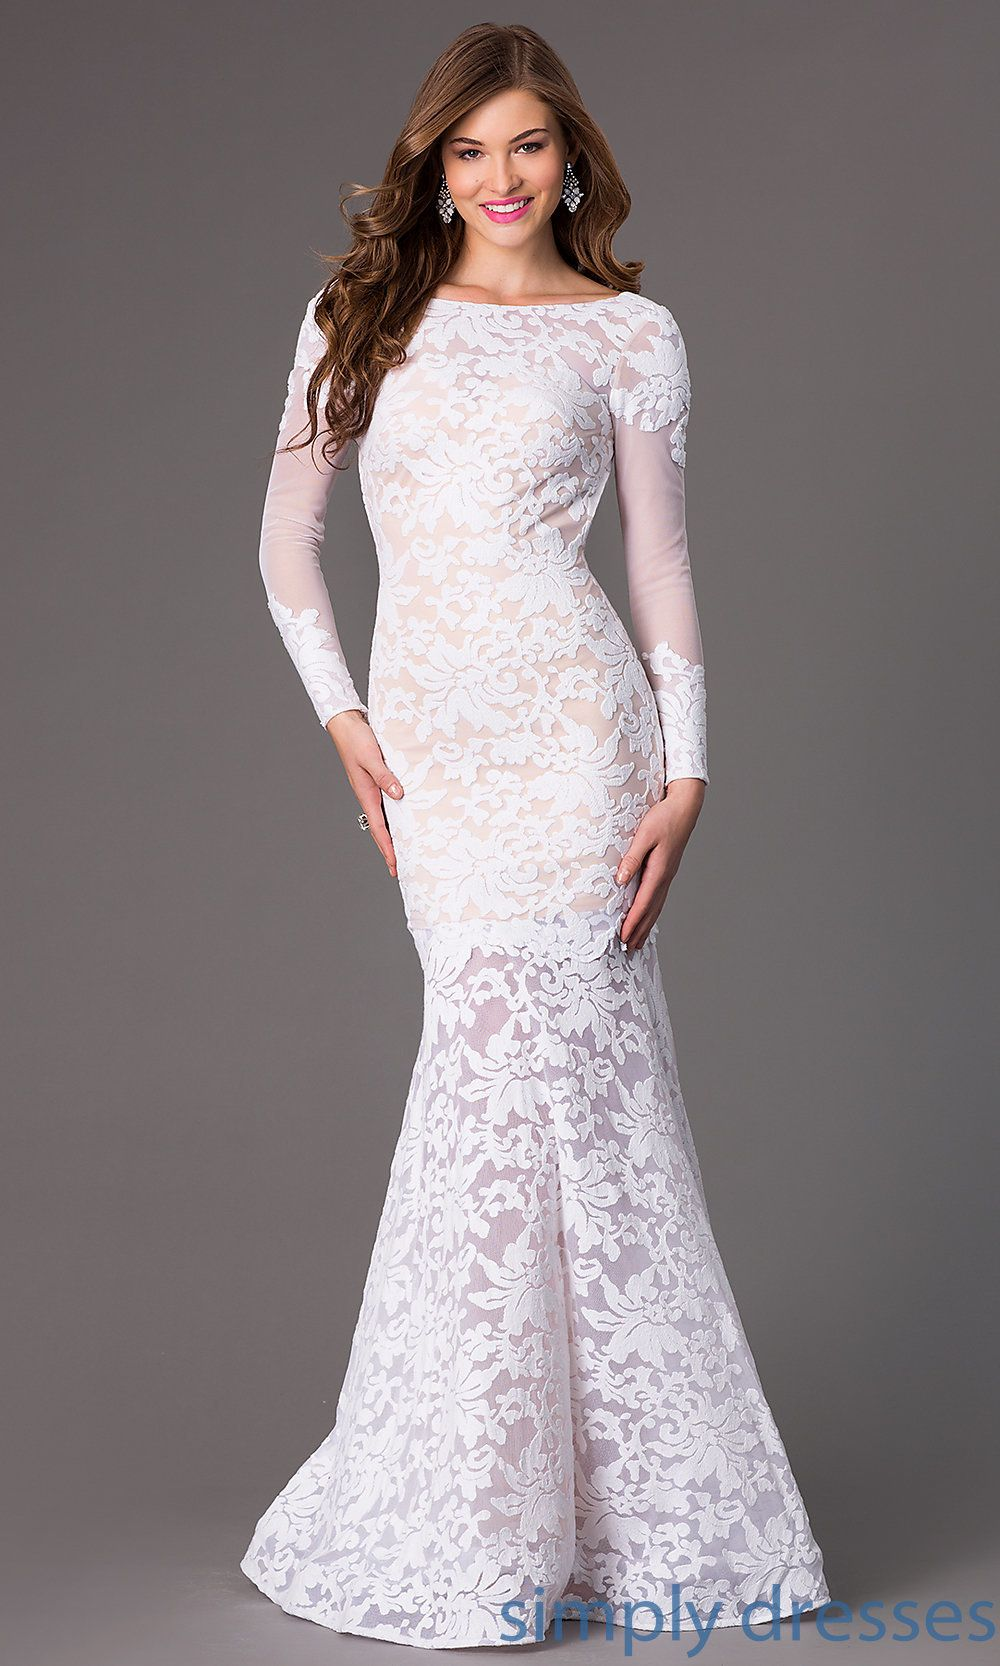 Xt open back lace mermaid gown by xtreme lace